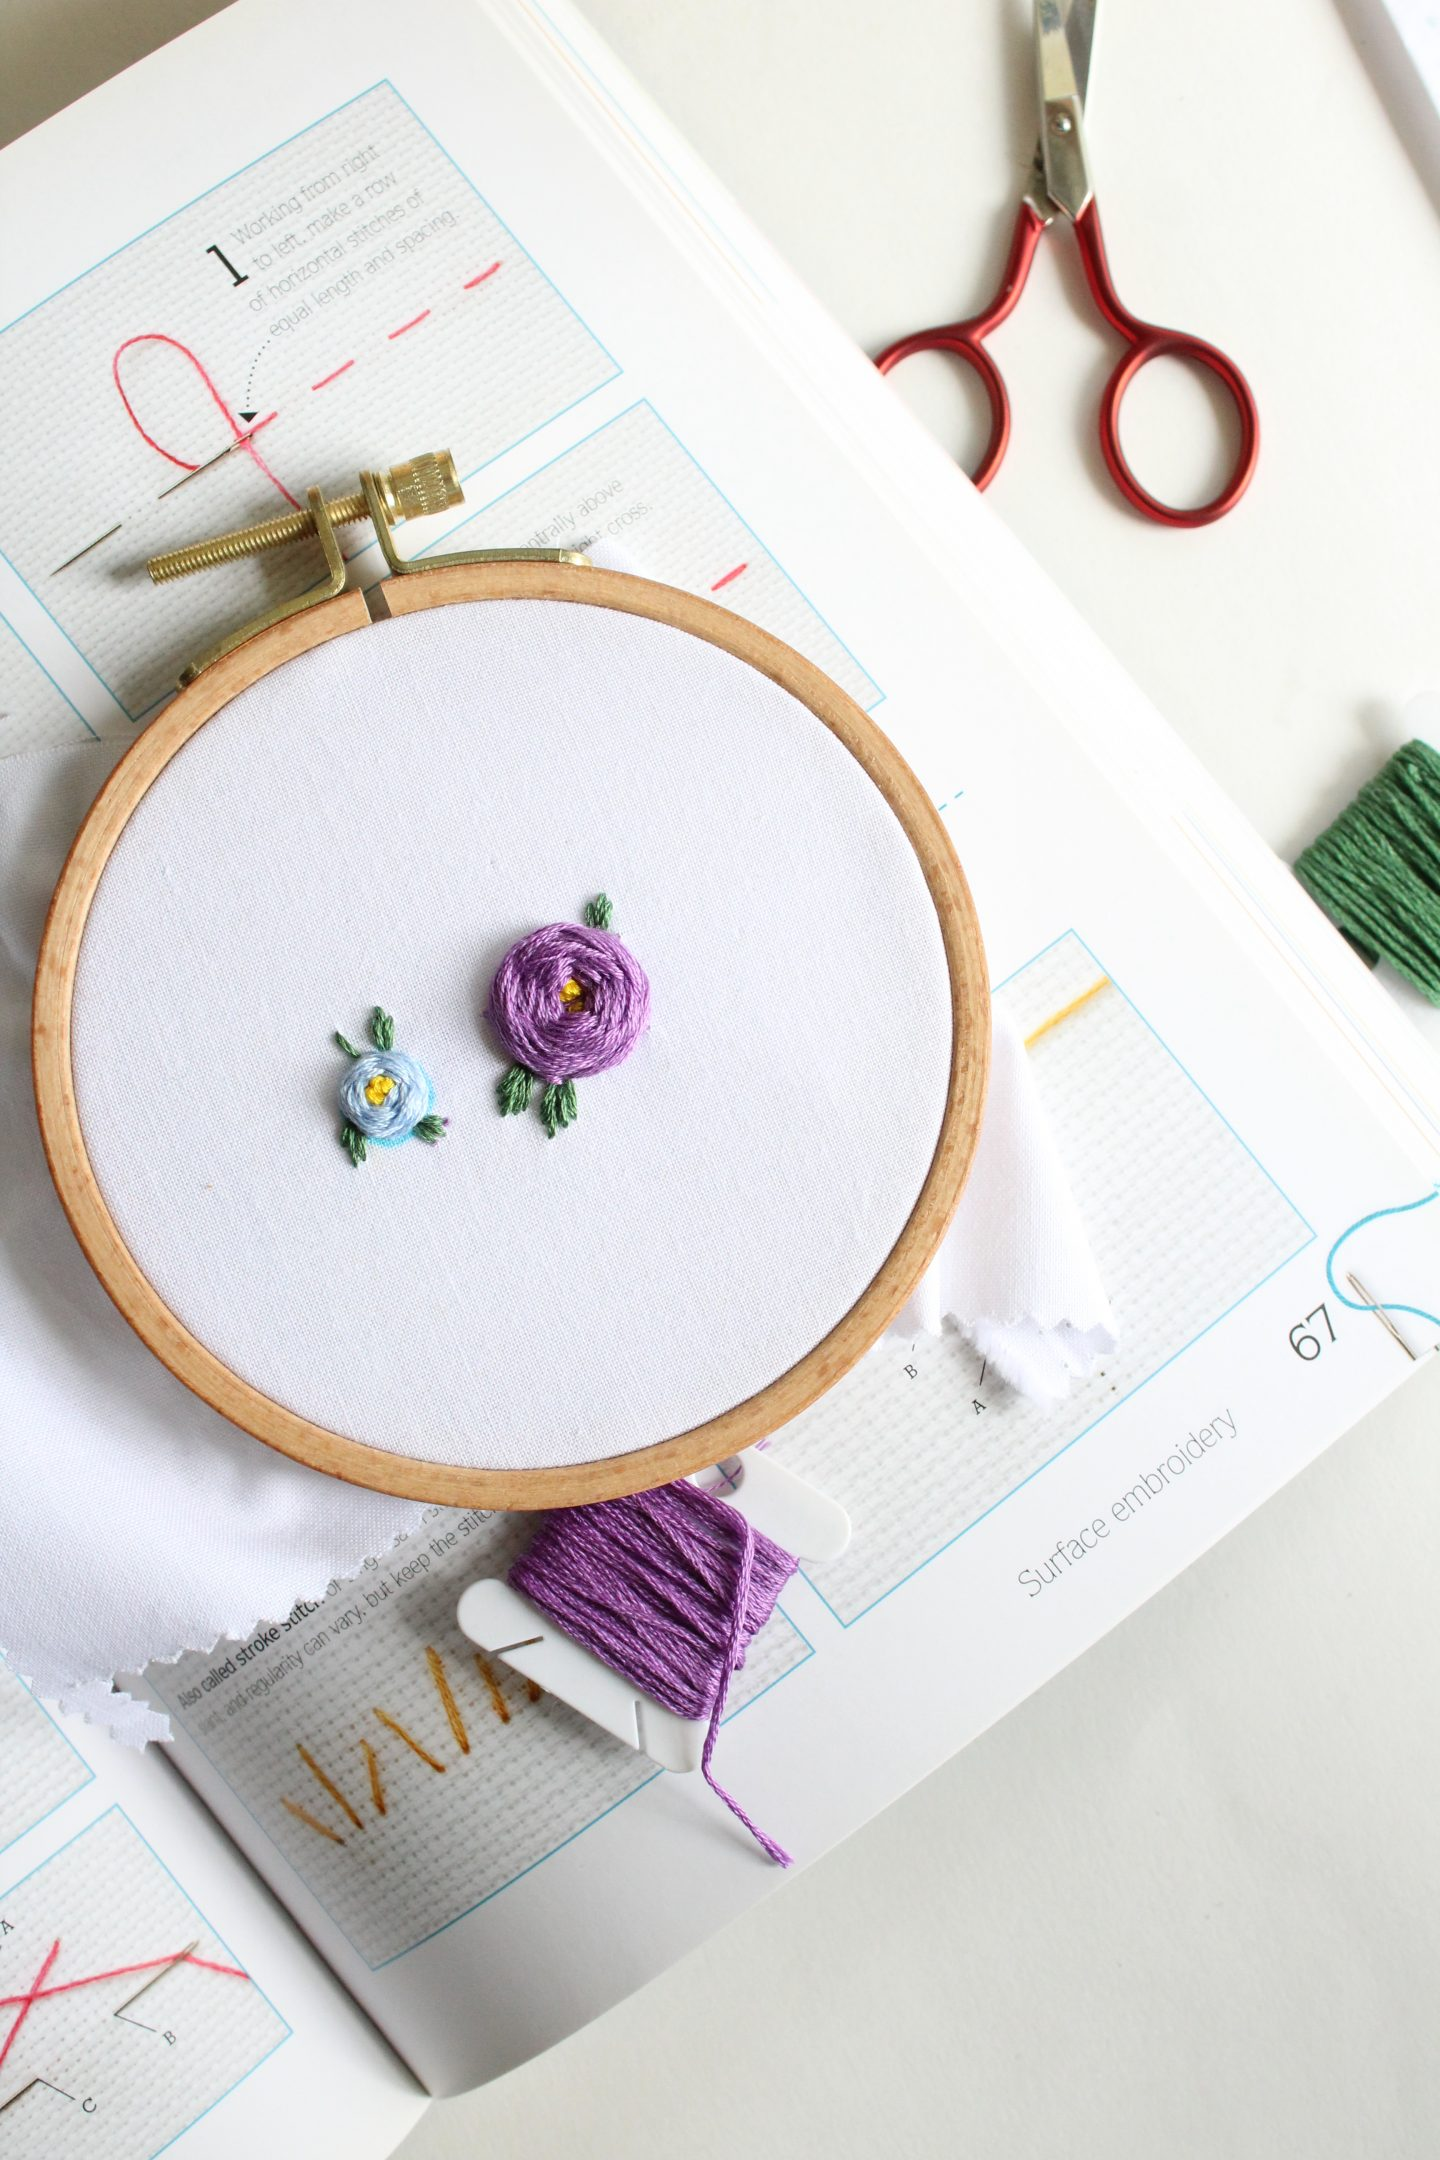 best embroidery books for beginners - picture of an embroidery hoop sitting on a book